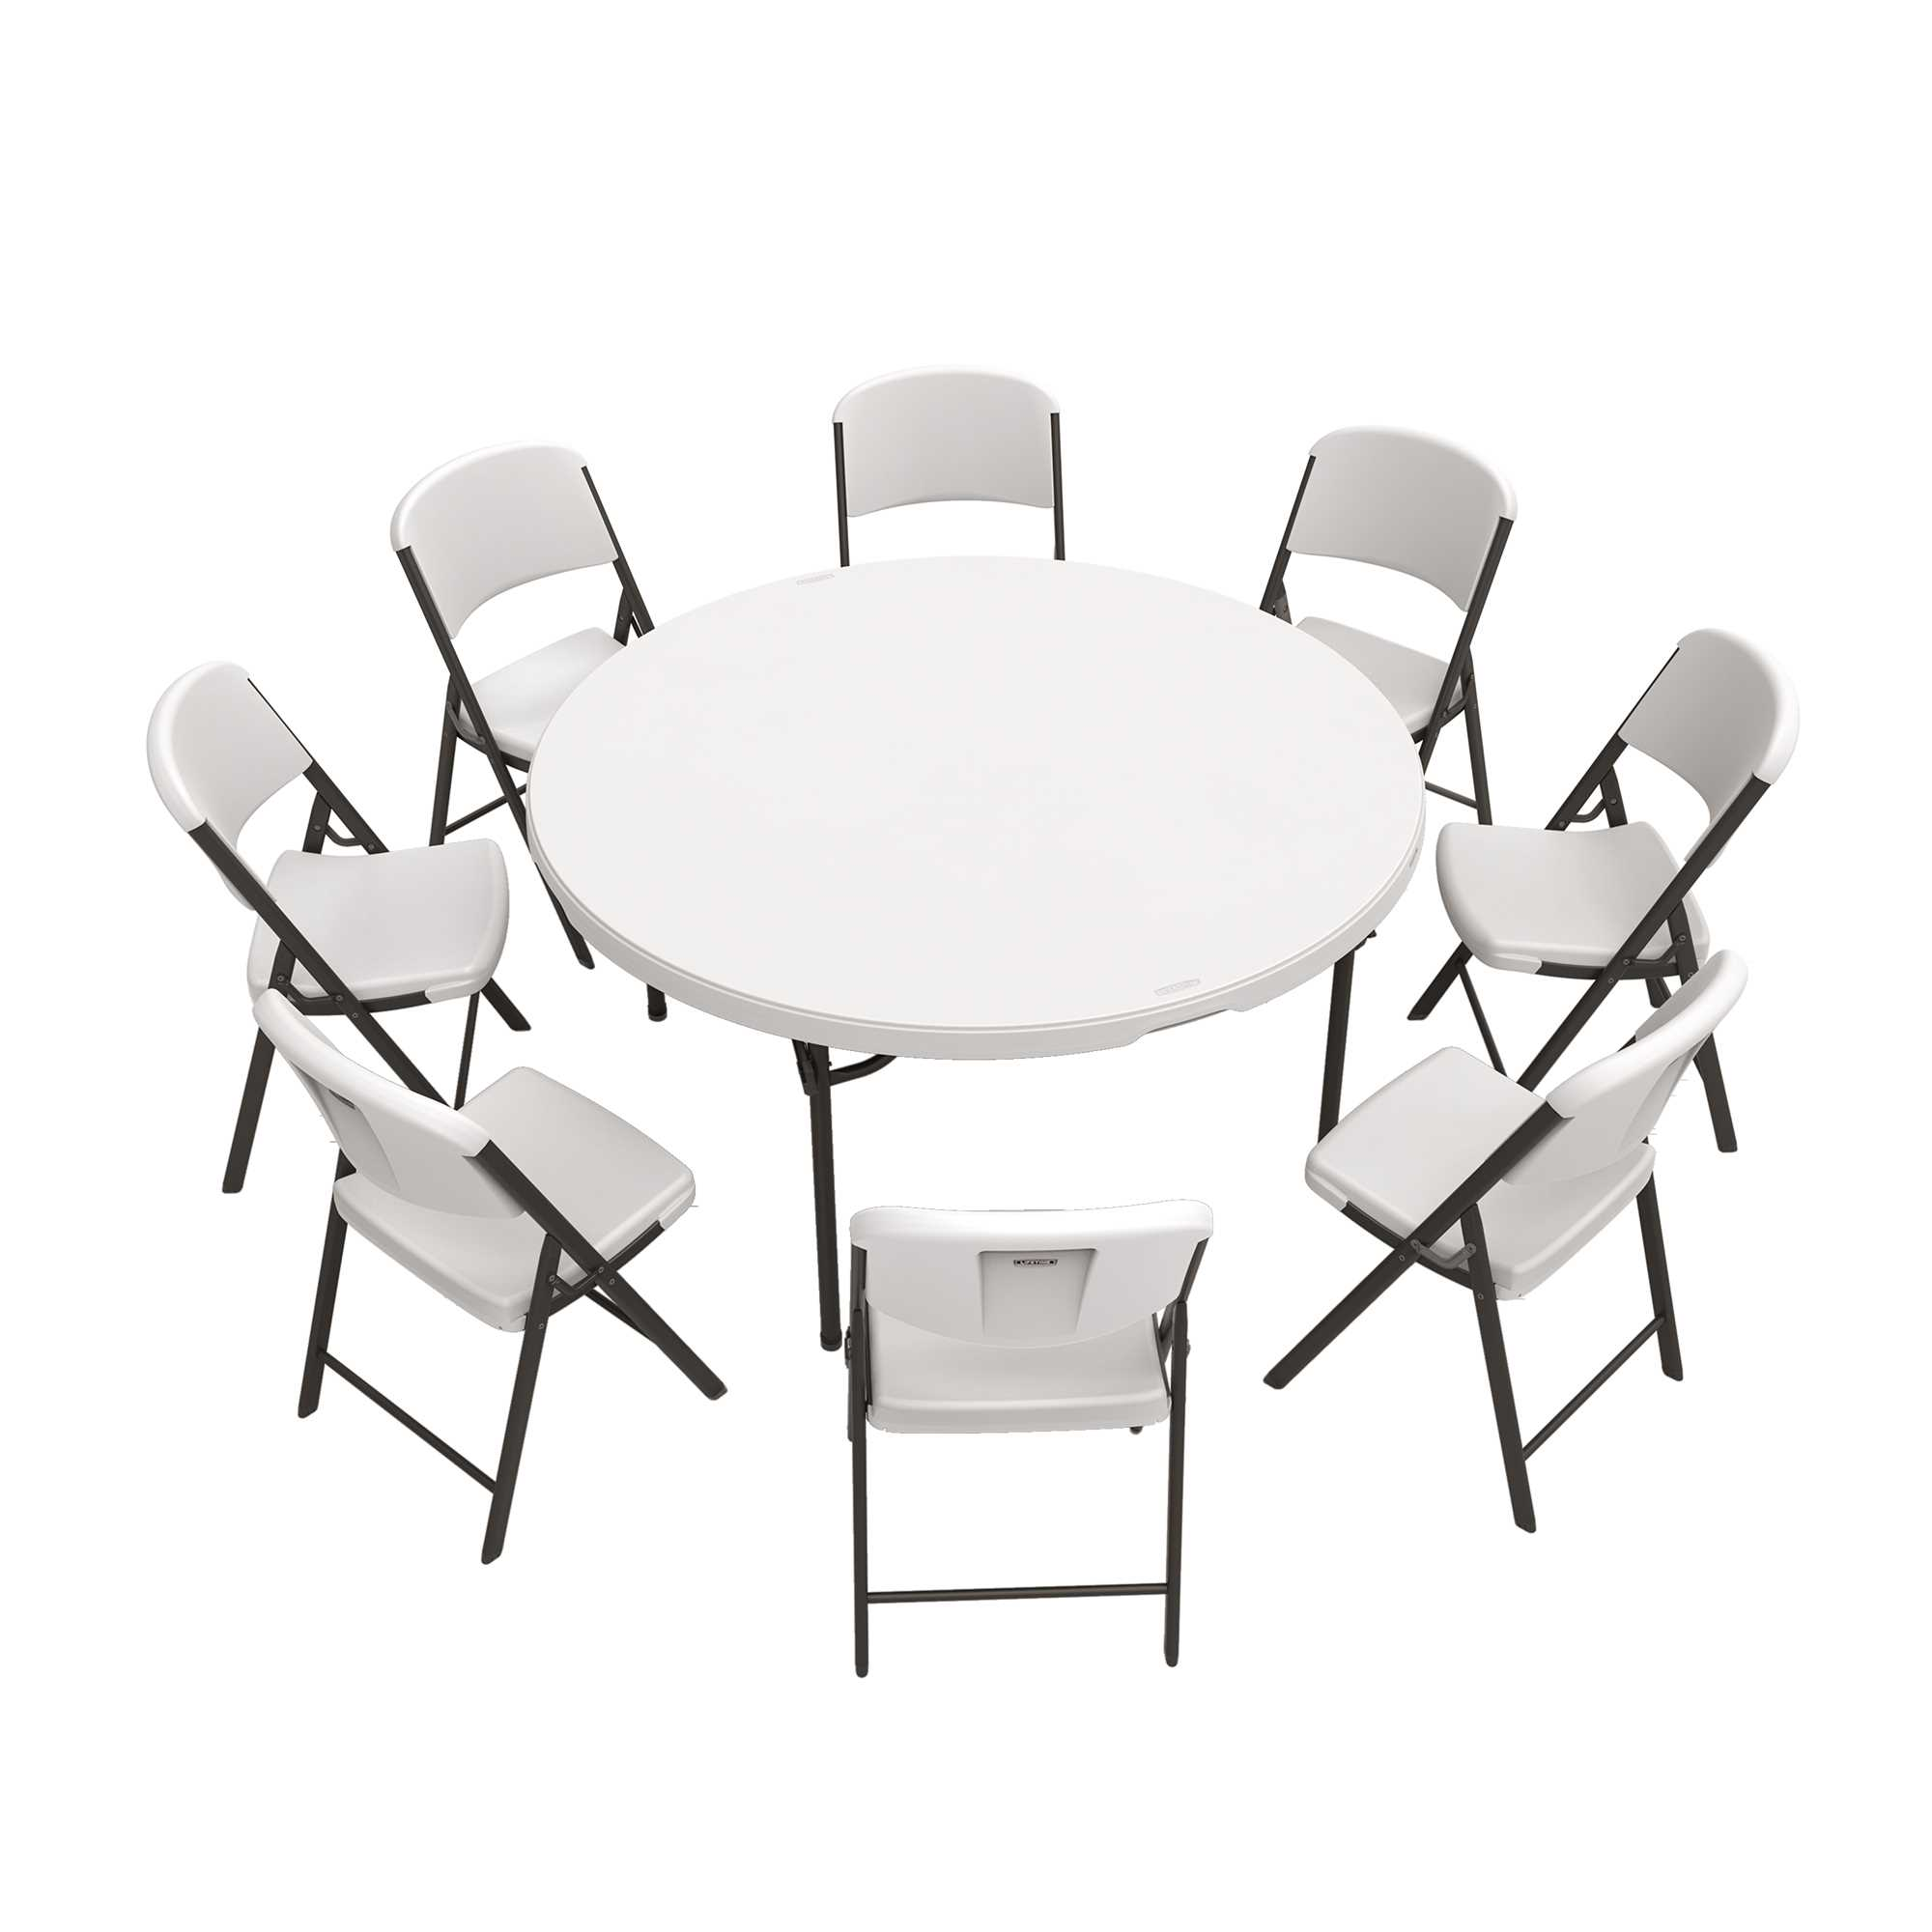 Lifetime 60-Inch Round Table and (8) Chairs Combo